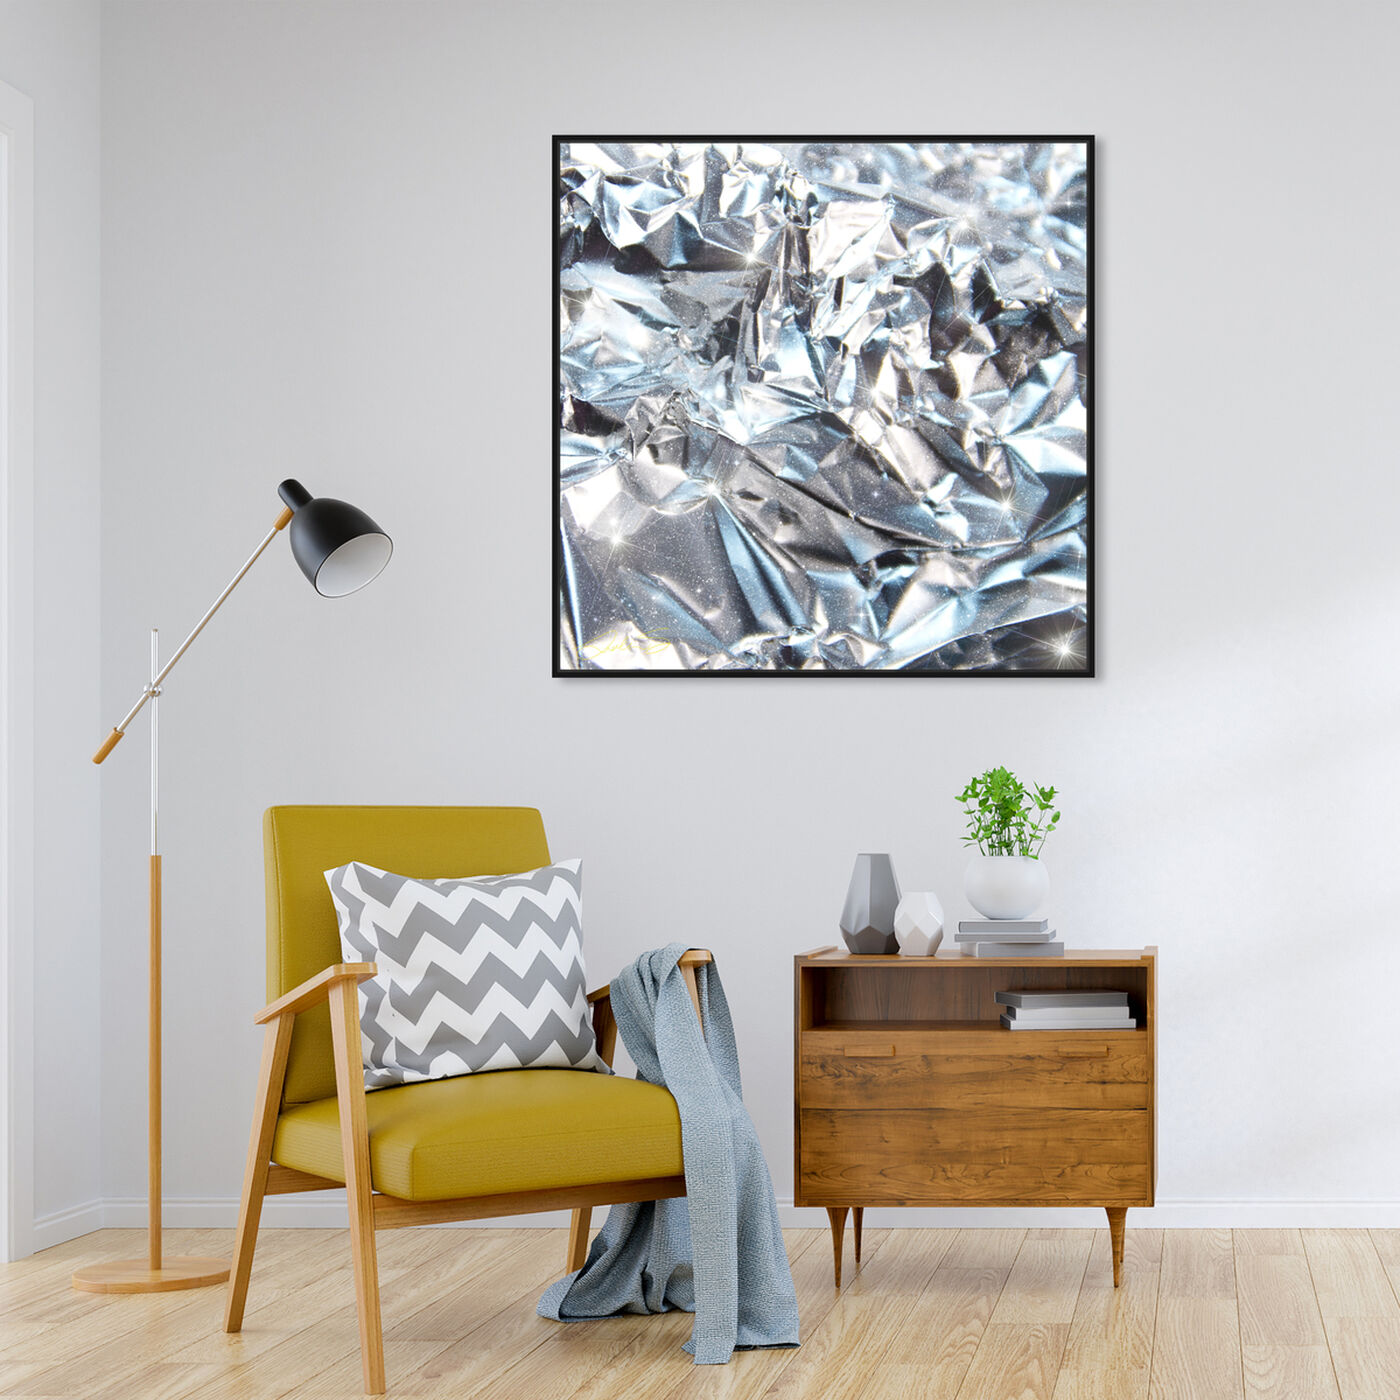 Hanging view of Future Skies featuring abstract and textures art.